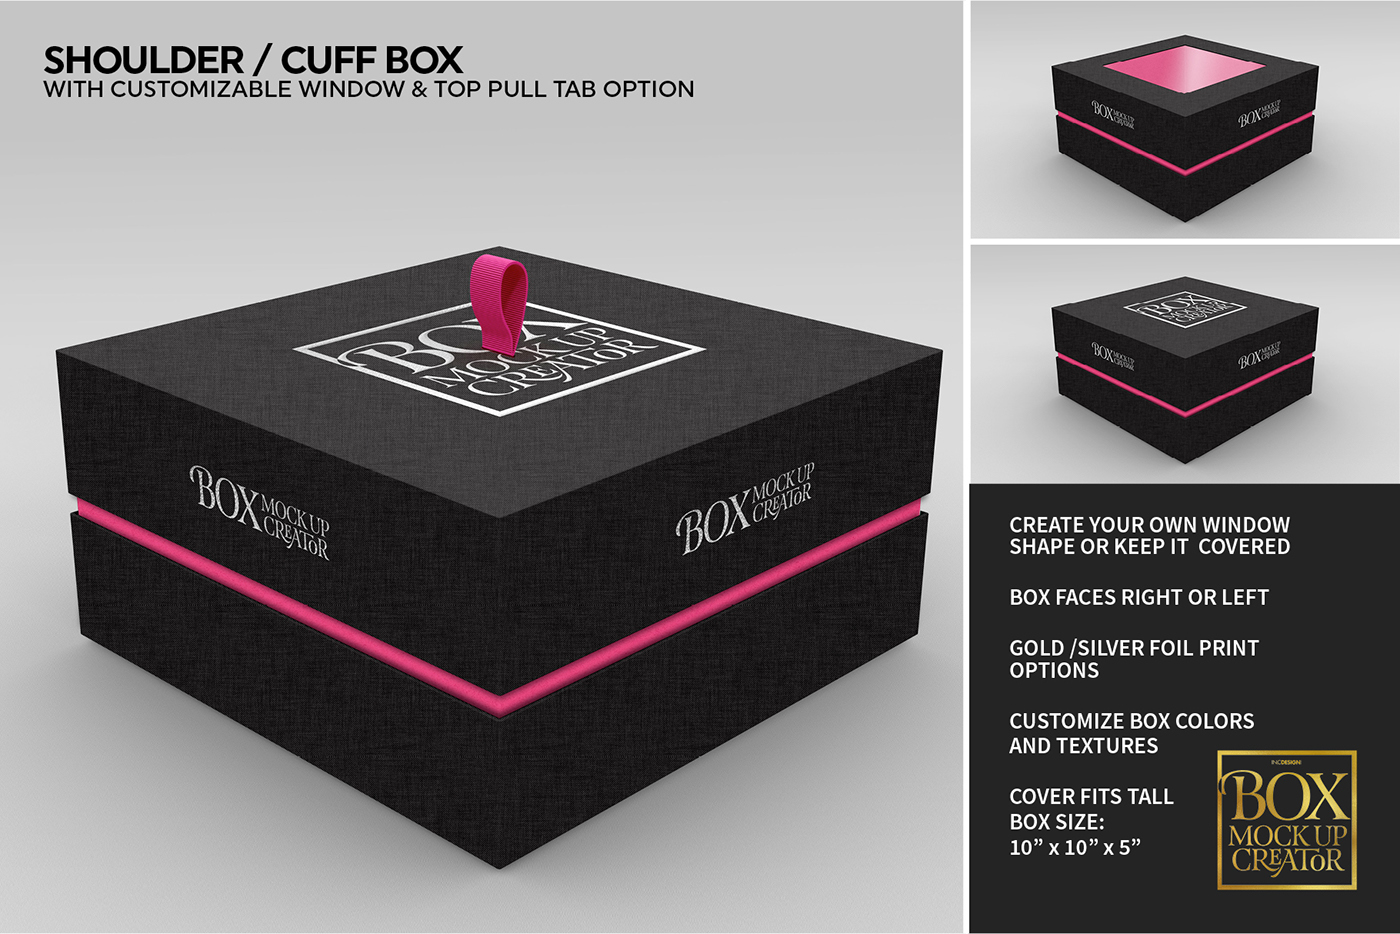 Square Box MockUp Creator with FREE Lite Version on Behance